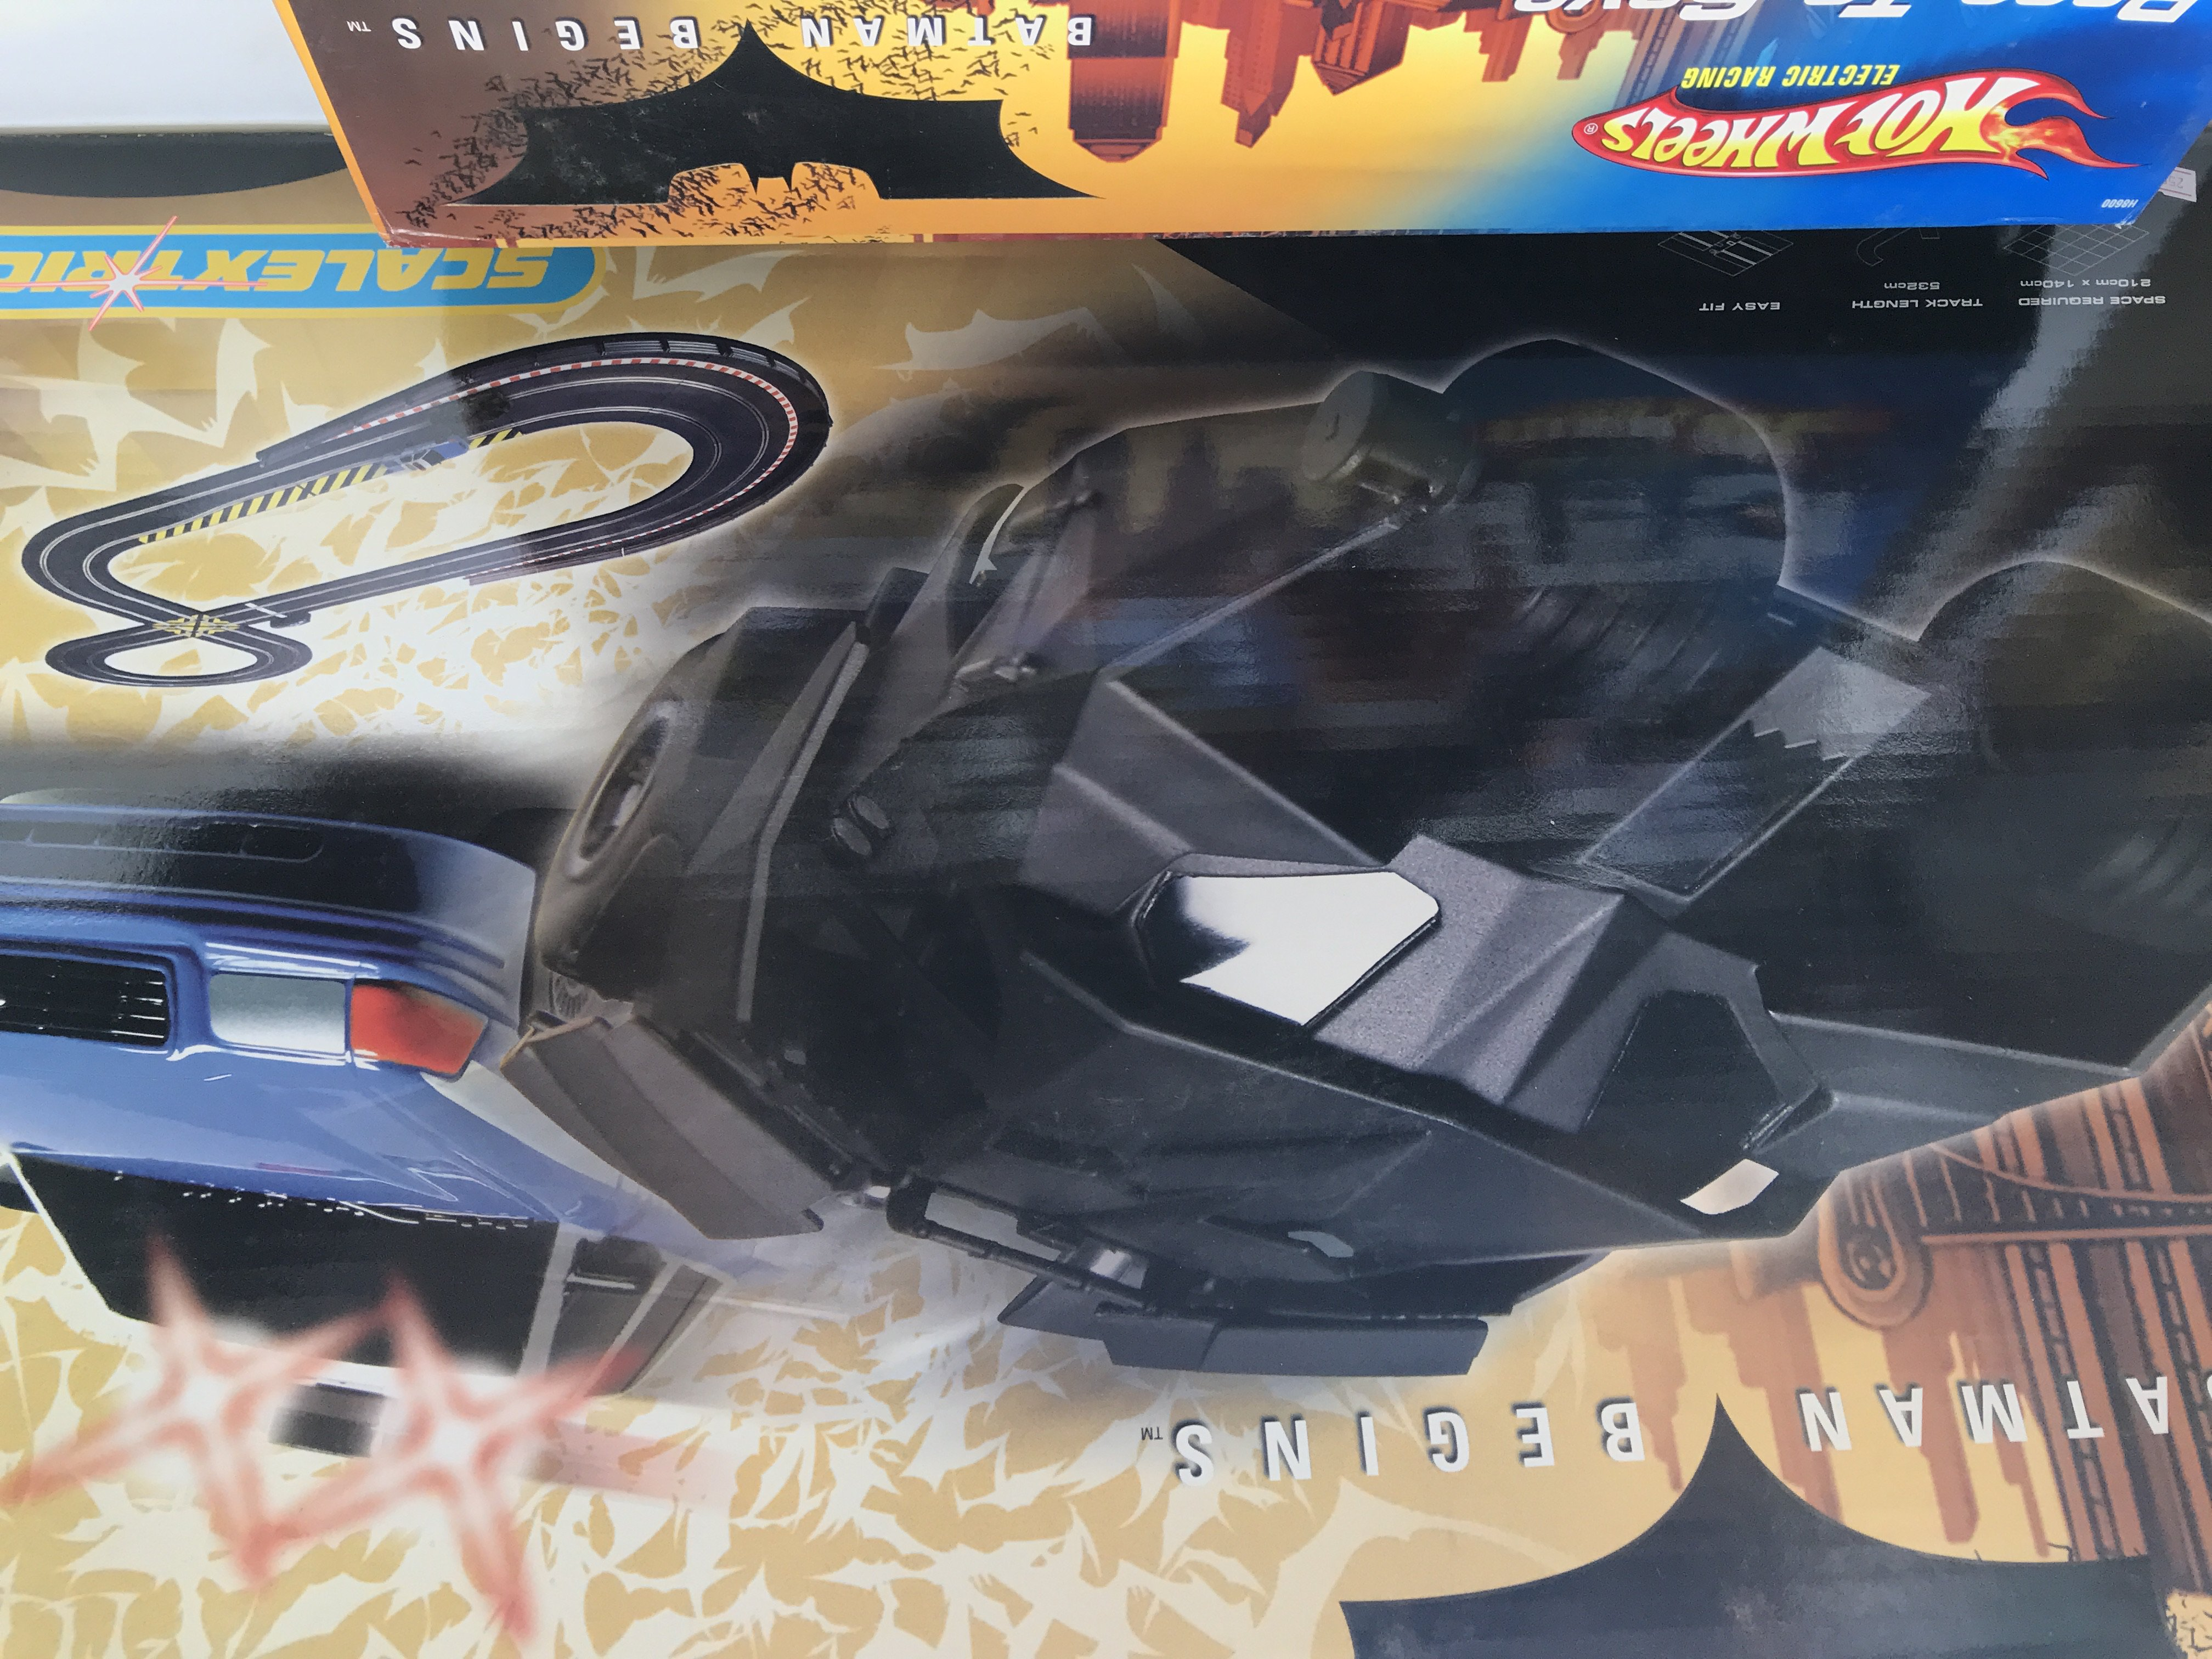 A Batman Begins Scalextric Set (Sealed) and a Hotw - Image 3 of 3